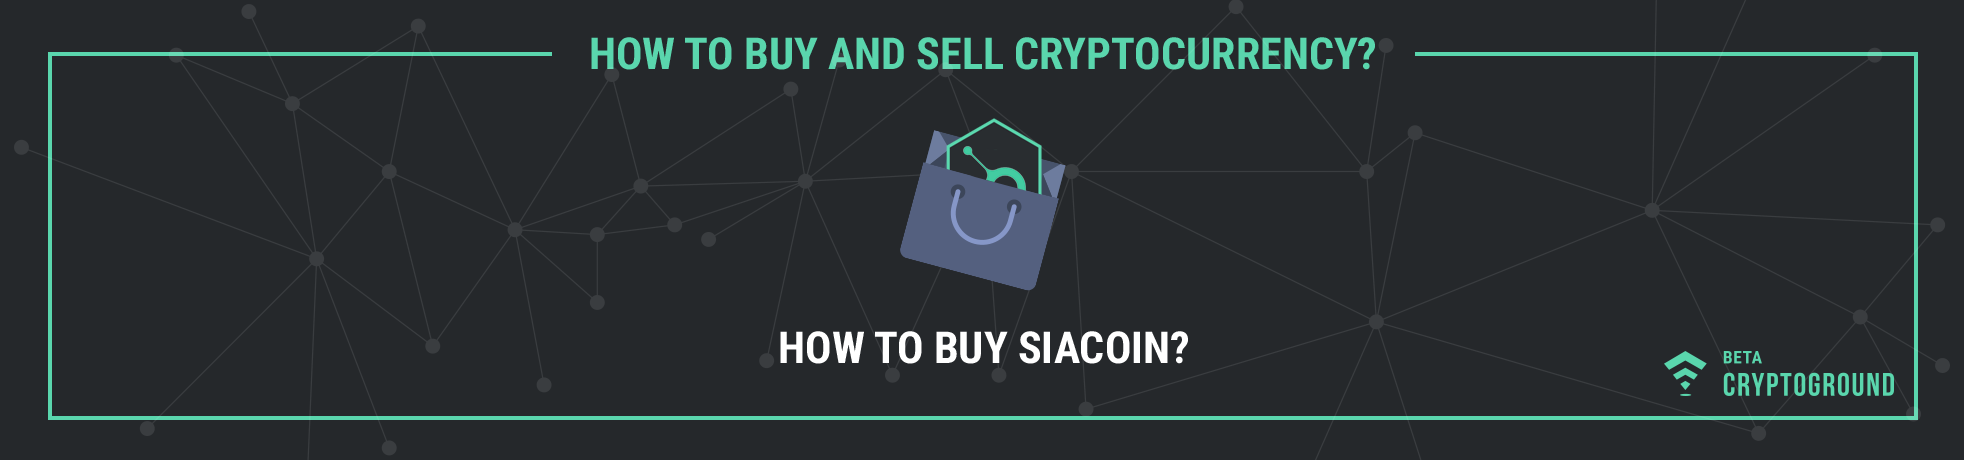 How to Buy SiaCoin?